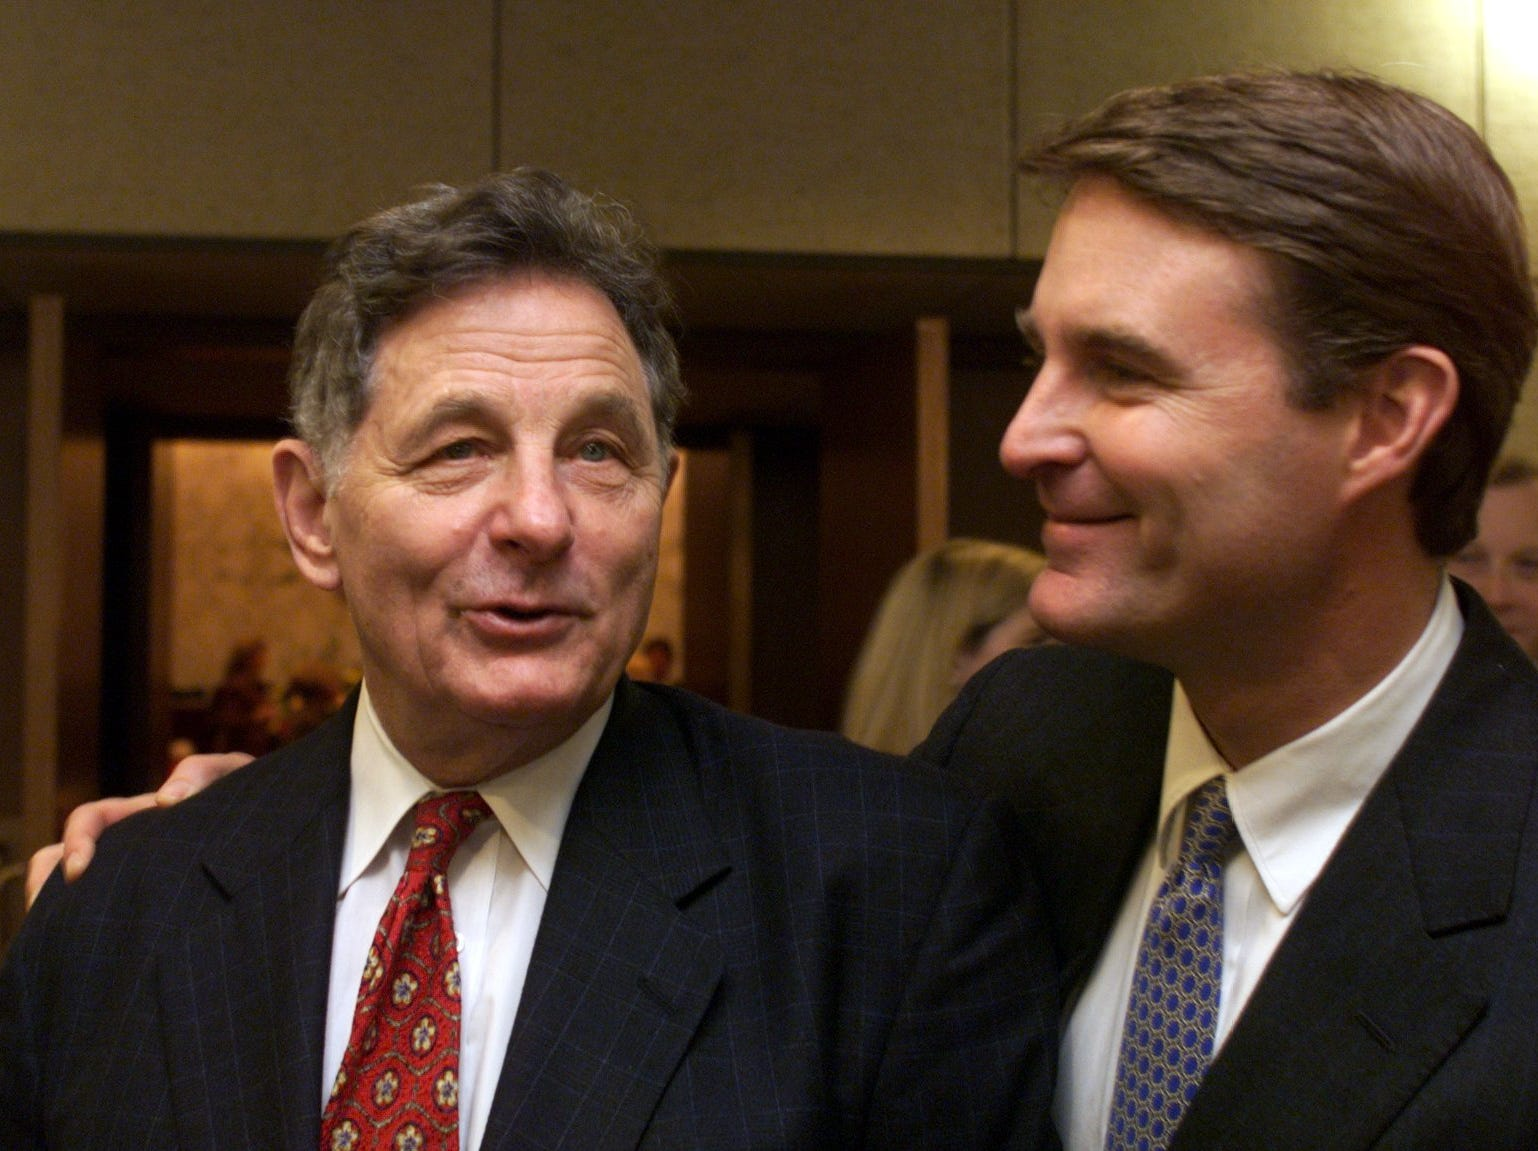 1/13/99   Former U.S. Senator Birch Bayh and son Evan say goodbye following a reception in the Hart Senate Office Building  Wednesday, Jan. 6.  Photo...Rich Miller  (George Stuteville story  slug: Bayh17 #19rm file # 34903 scans 1A)